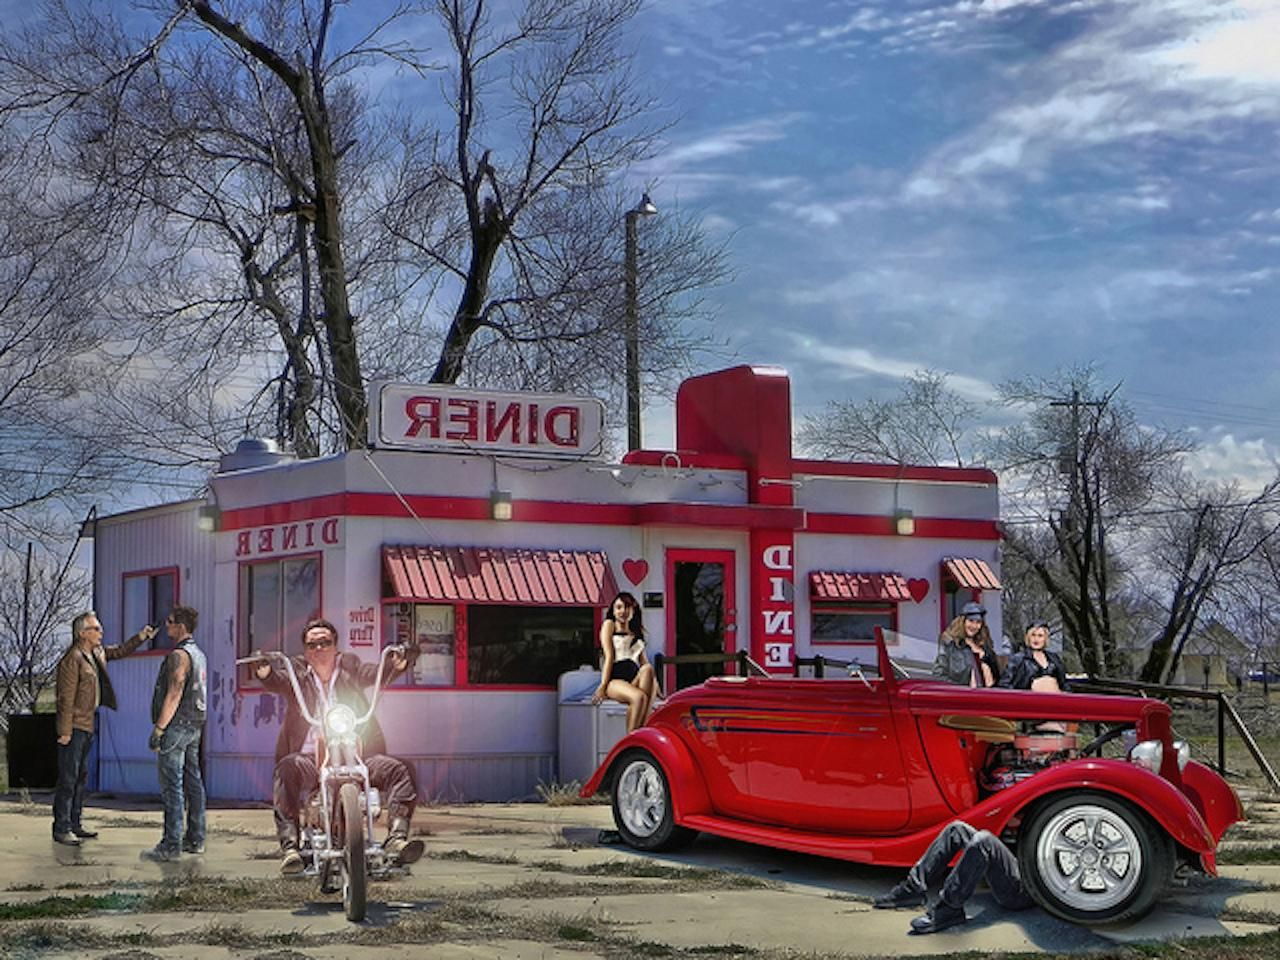 retro diner wallpaper american diner retro motorbike usa abstract 50s diner and soda. Black Bedroom Furniture Sets. Home Design Ideas